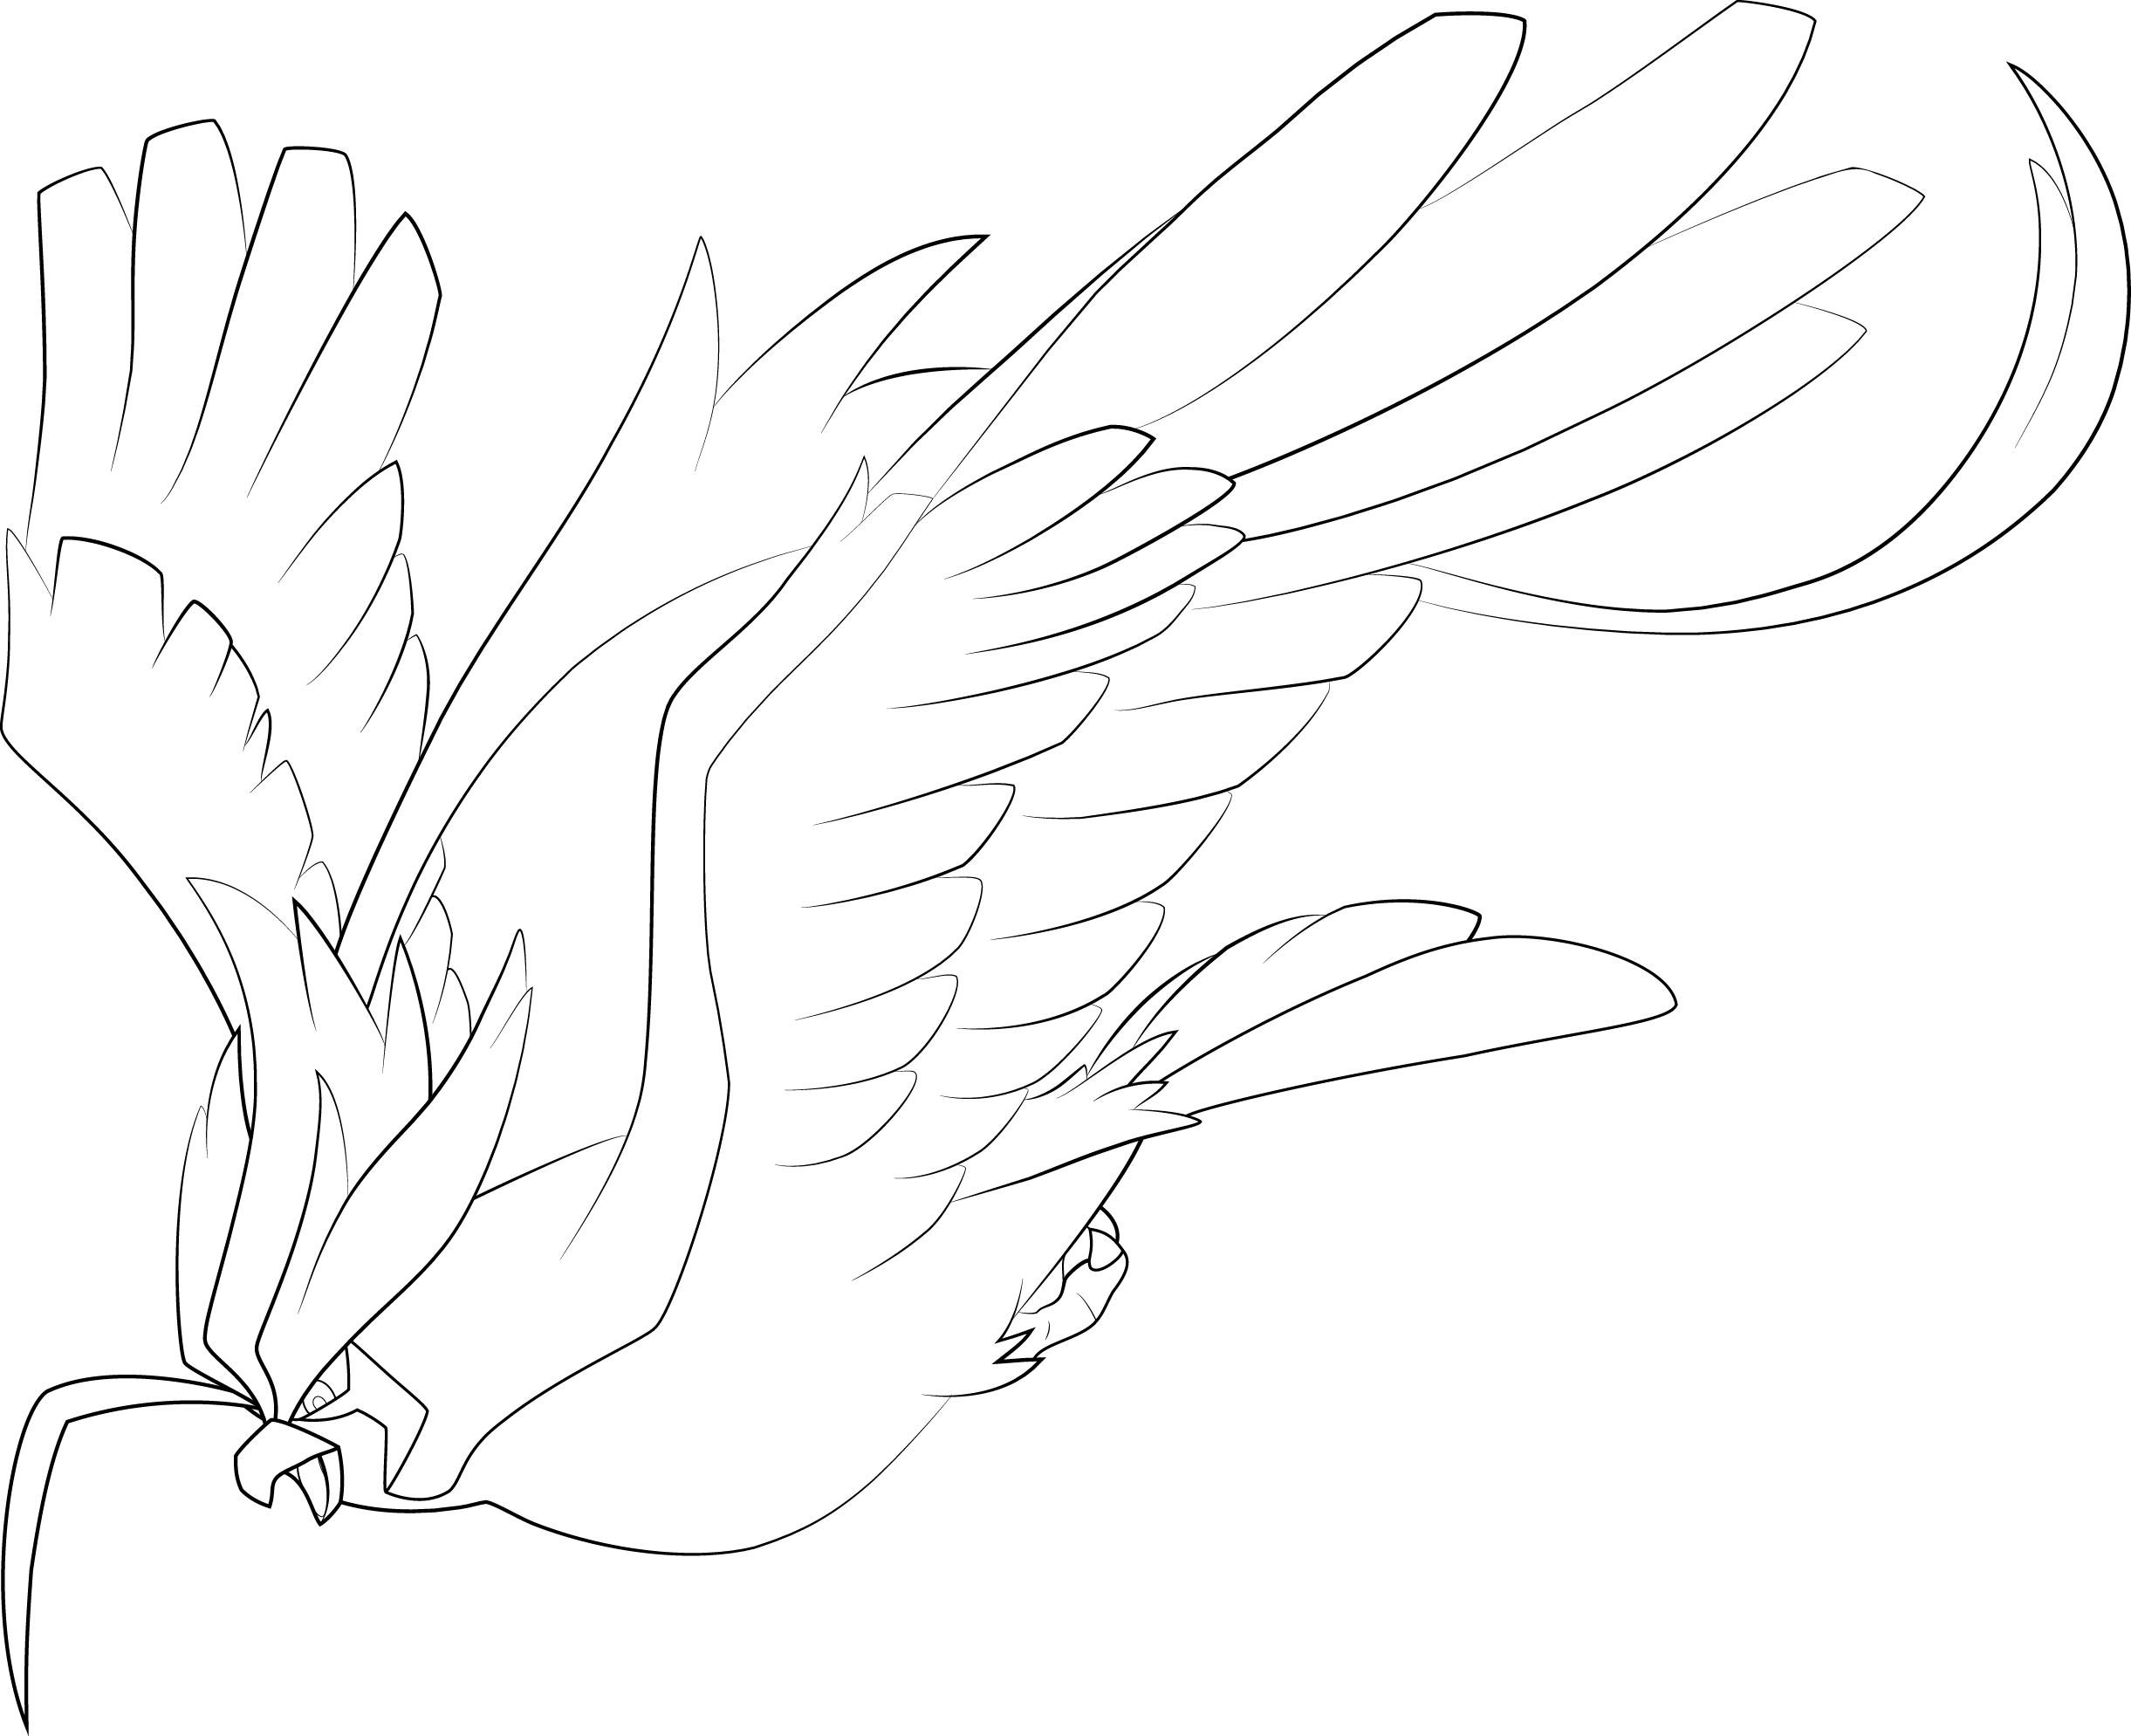 Pokemon Ausmalbilder Bisaflor : Mega Pidgeot Line Art By Alcadeas1 Lineart Pokemon Detailed